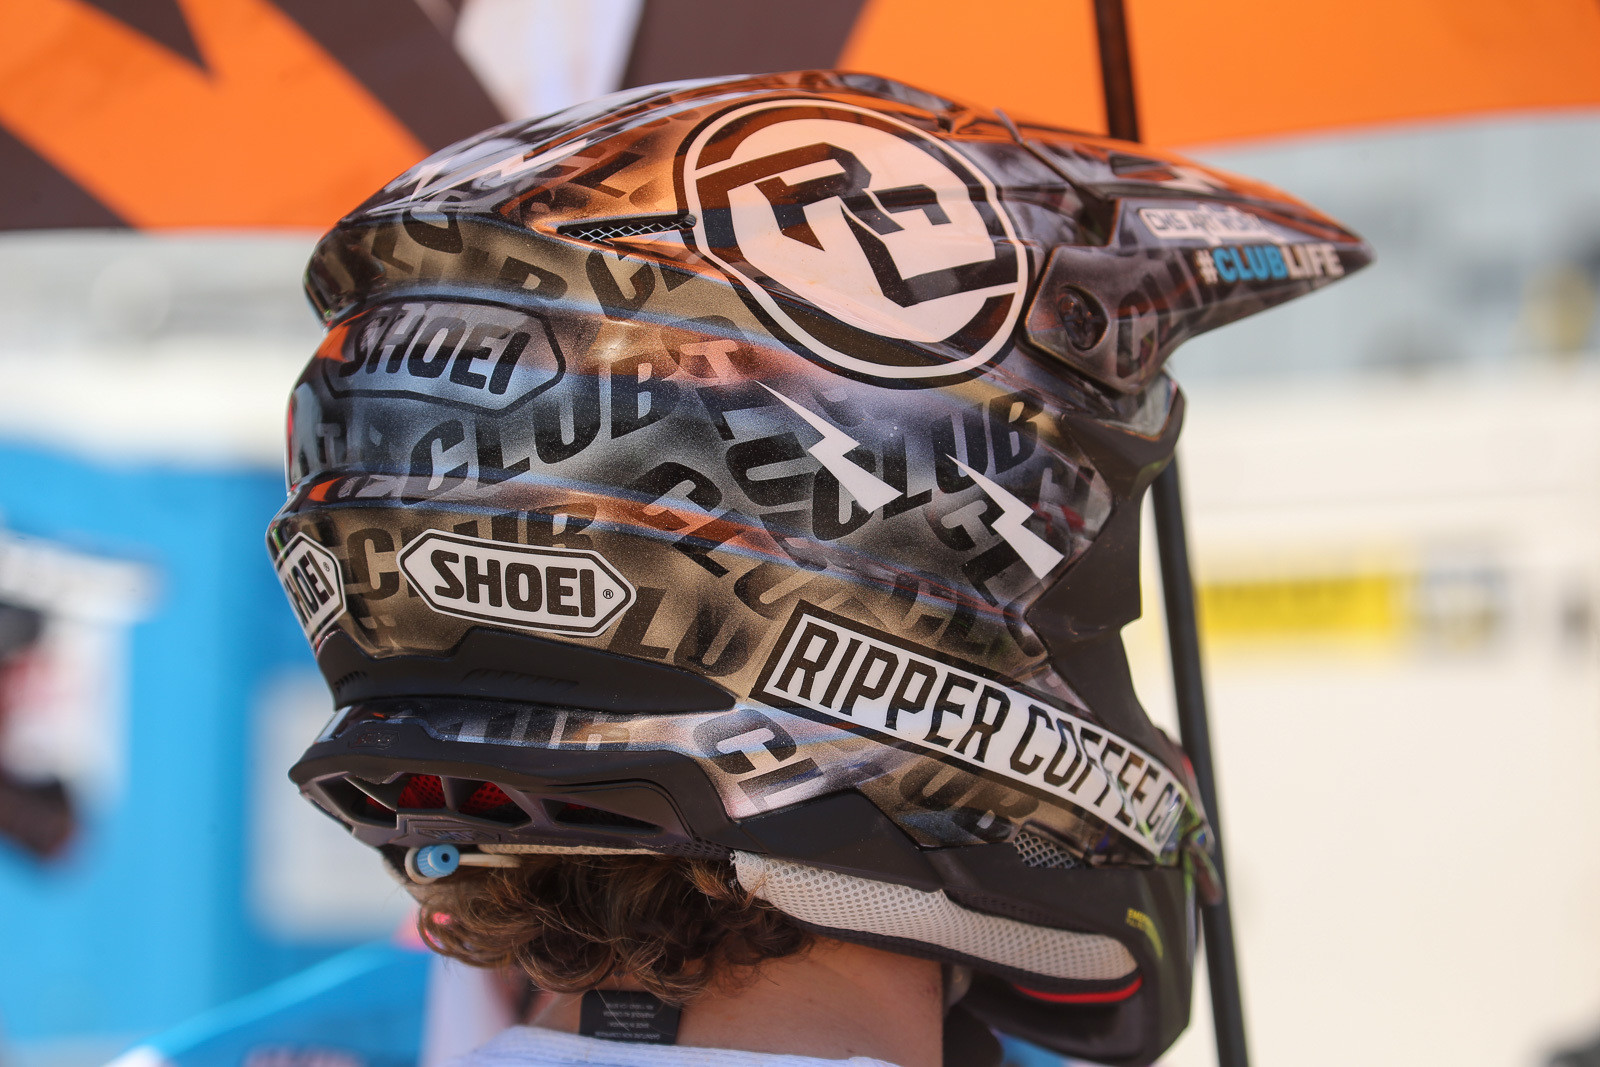 We spotted a few helmets to spotlight this week, including the CMS-ArtWorx paint on the Club MX lids.